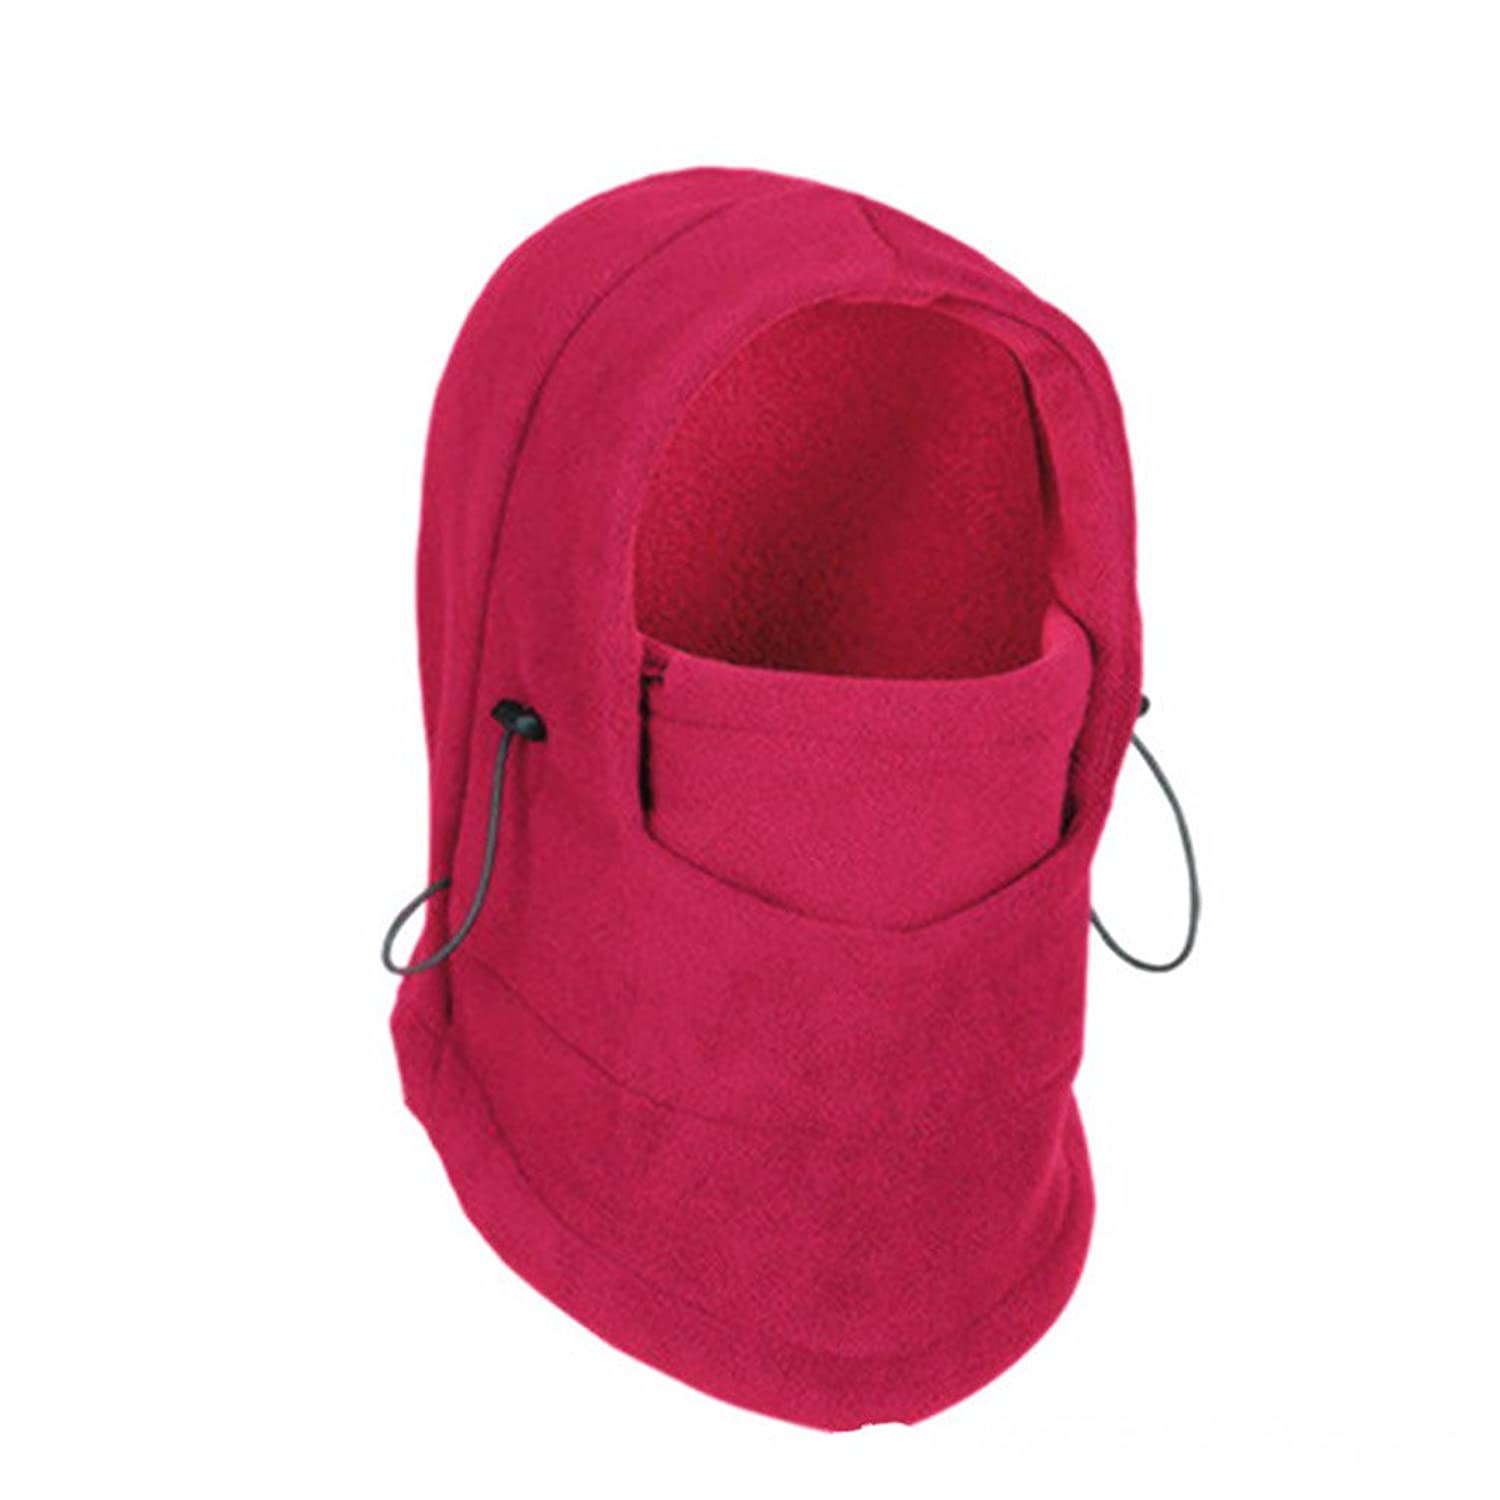 DREAMY New Fashion Cold-proof Warm Fleece Hat Soft Thicken Cycling Mask